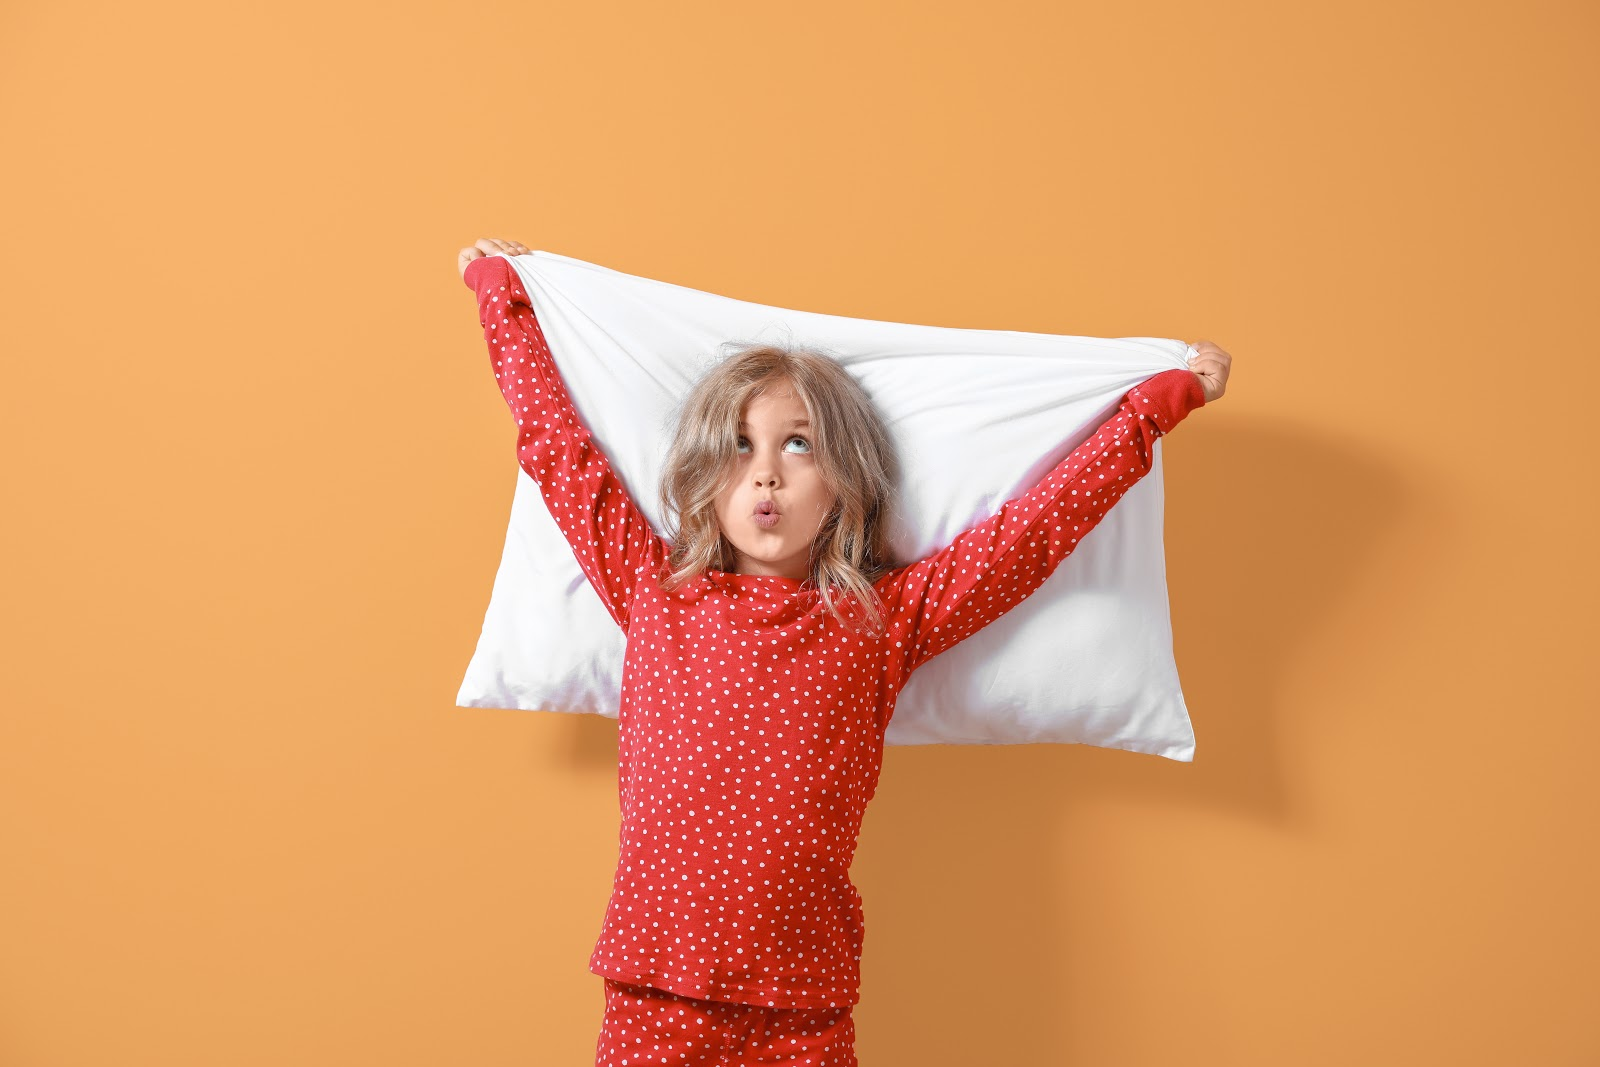 School fundraising ideas: Little girl in pajamas holding pillow up